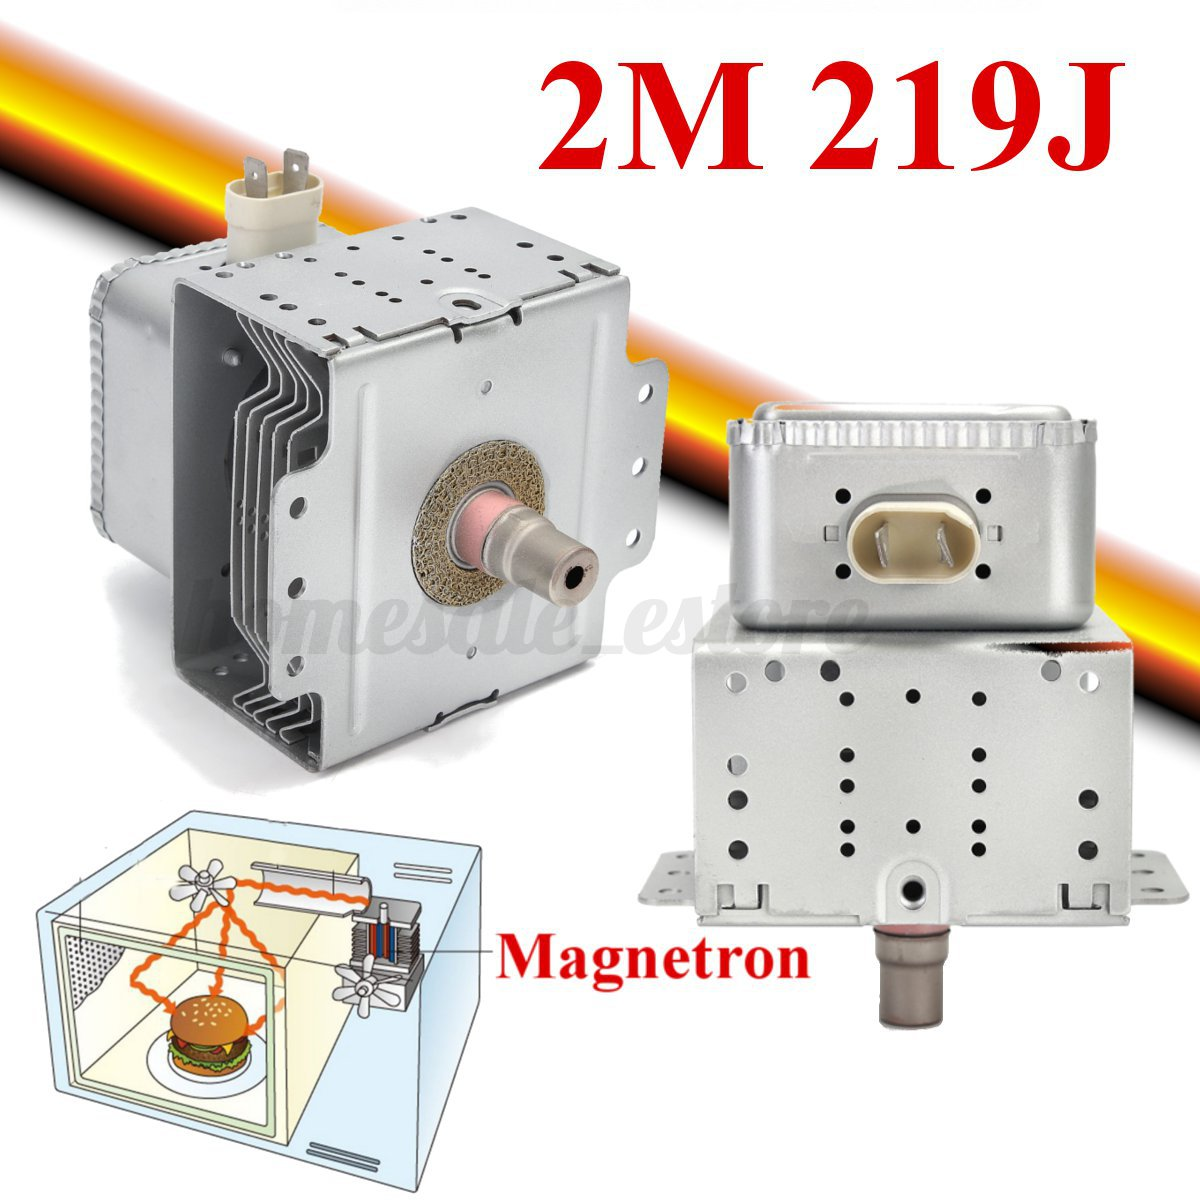 Microwave Oven Magnetron ~ Microwave oven roaster magnetron replacement parts for